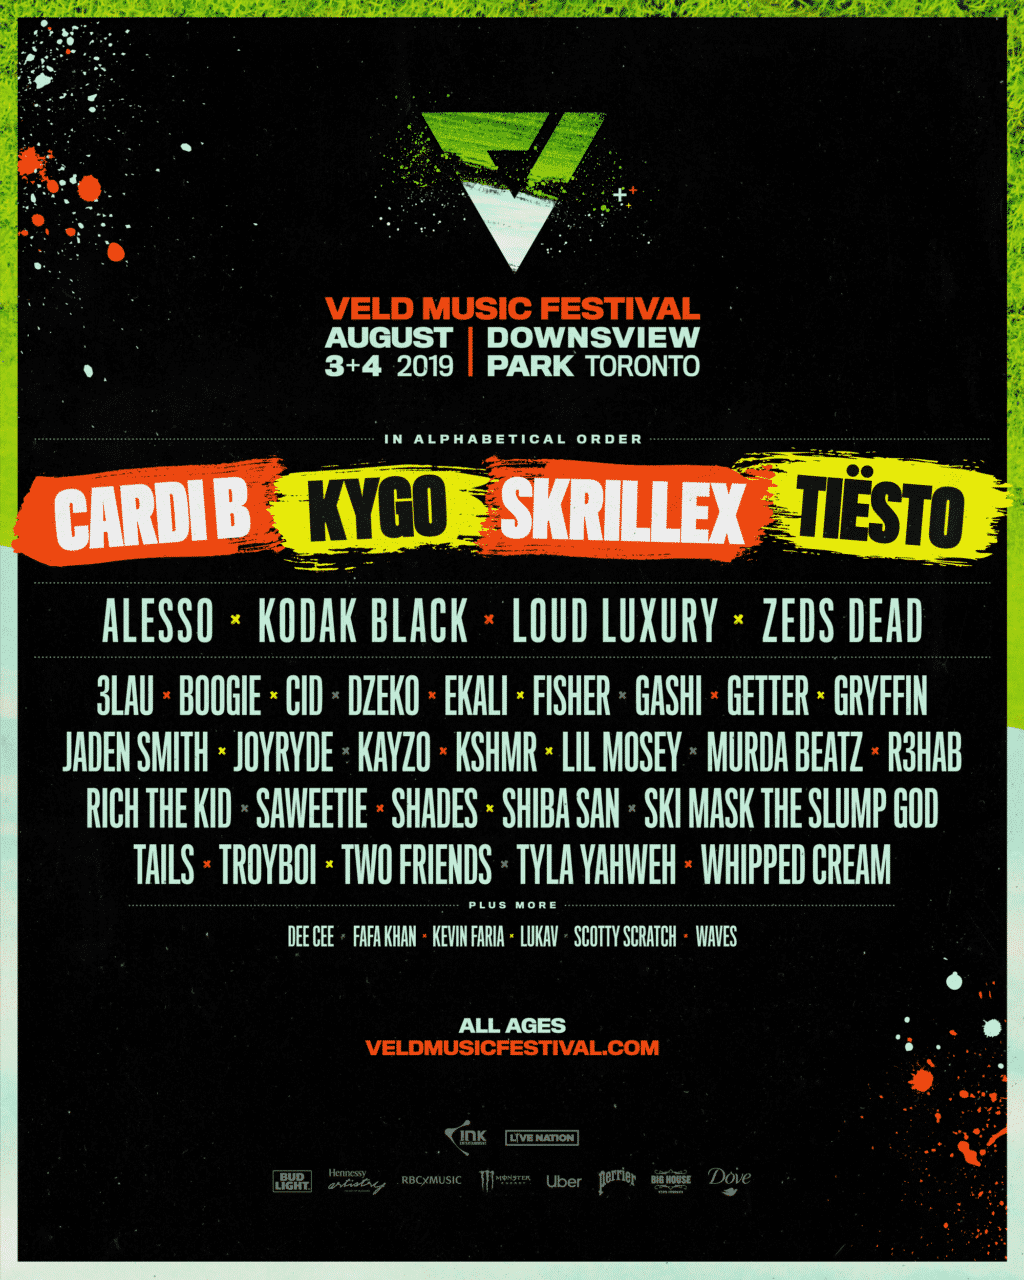 Cardi B, Skrillex, Kygo, Tiësto + more top phase one of 2019 VELD lineup